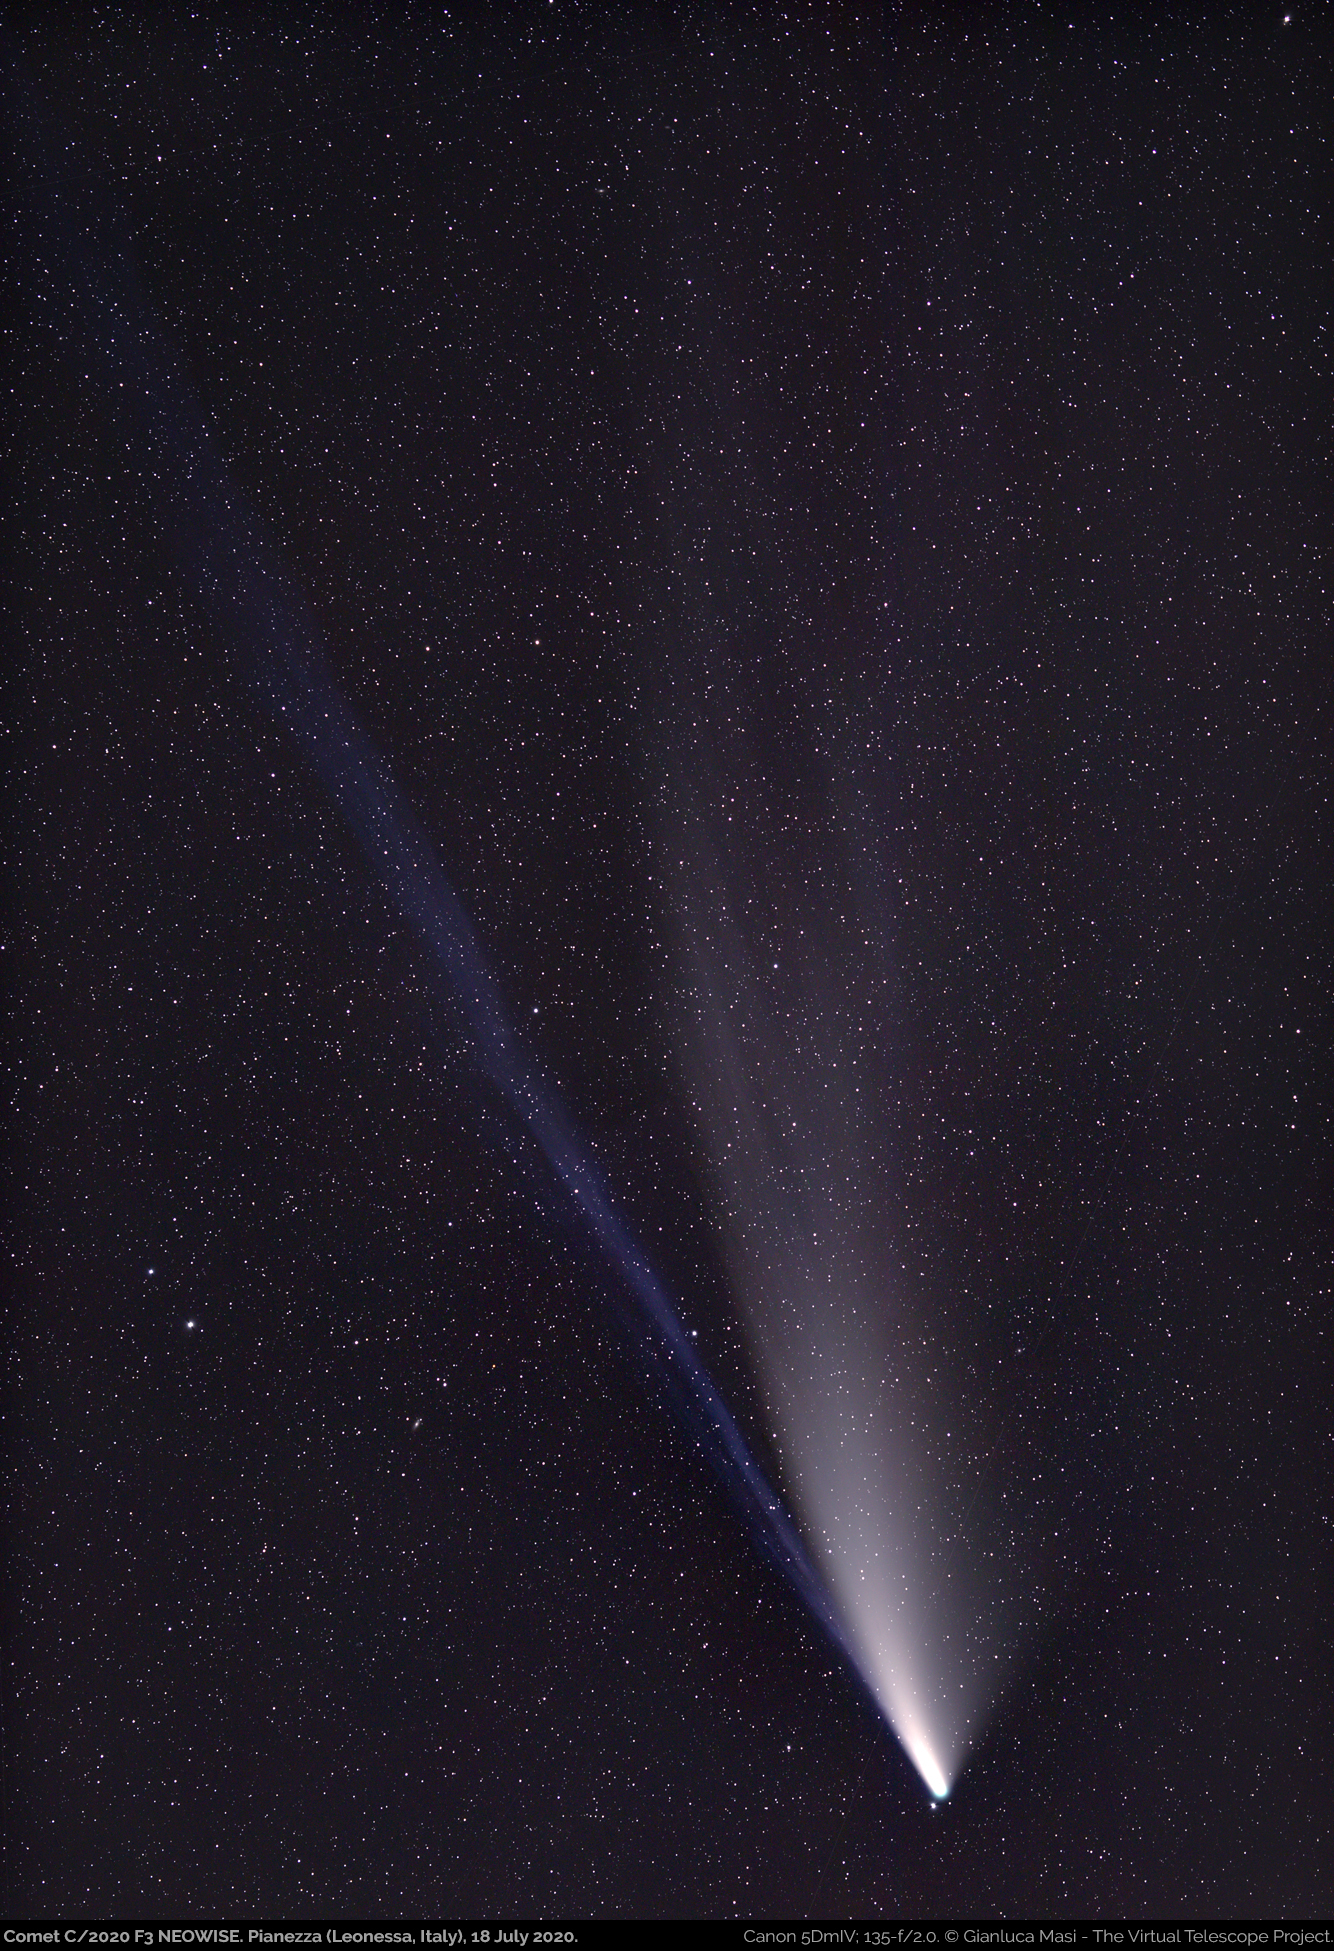 Comet C/2020 F3 NEOWISE, imaged on 18 July 2020.